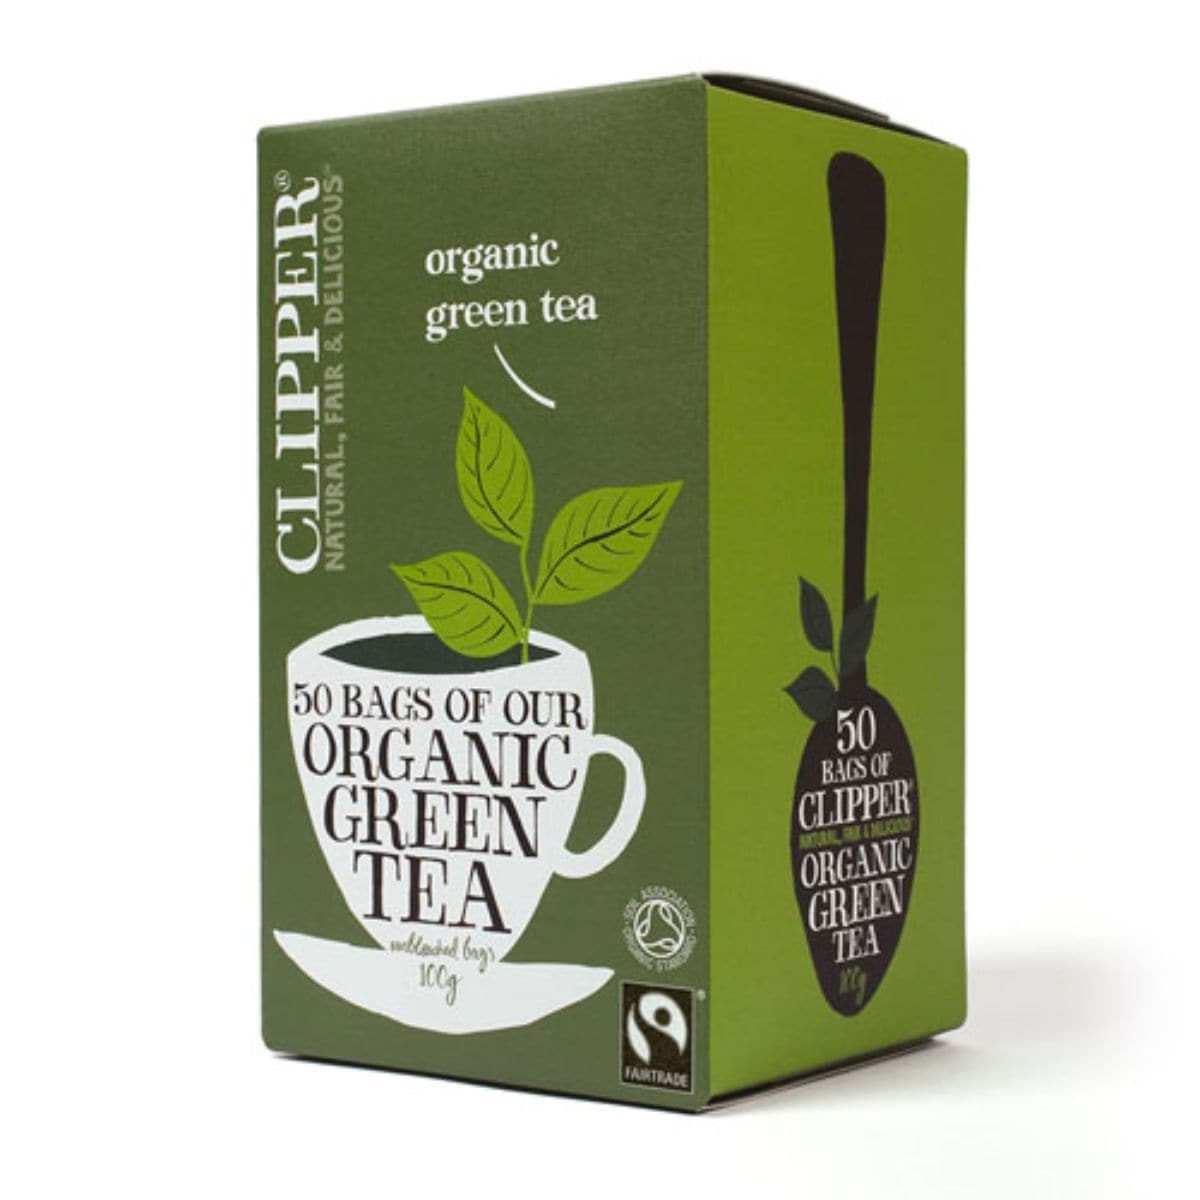 Clipper Organic Green Tea - 40 bags - SoulBia